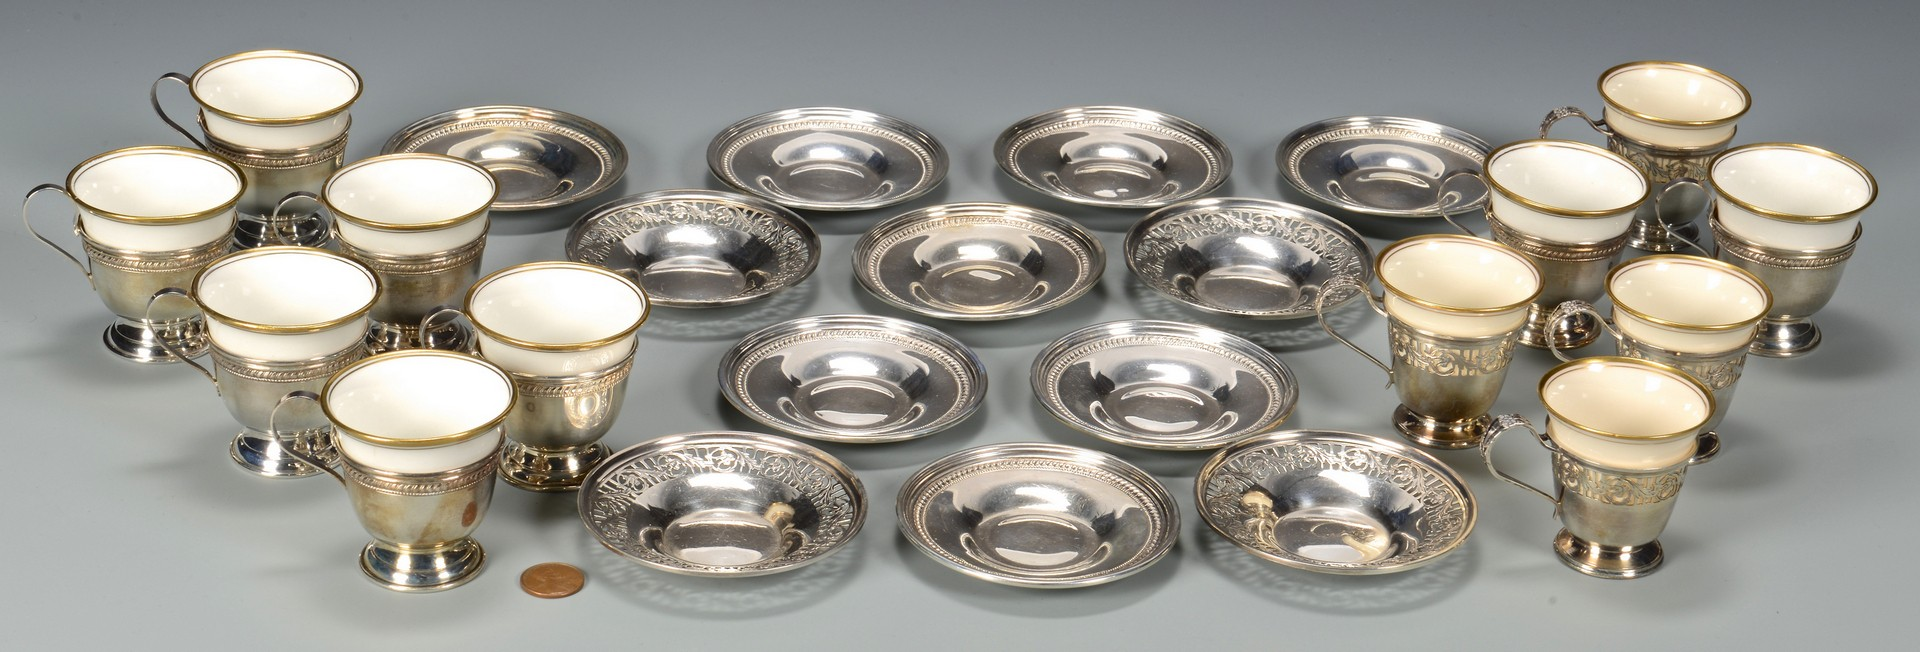 Lot 811: Sterling Demitasse Cups/Saucers